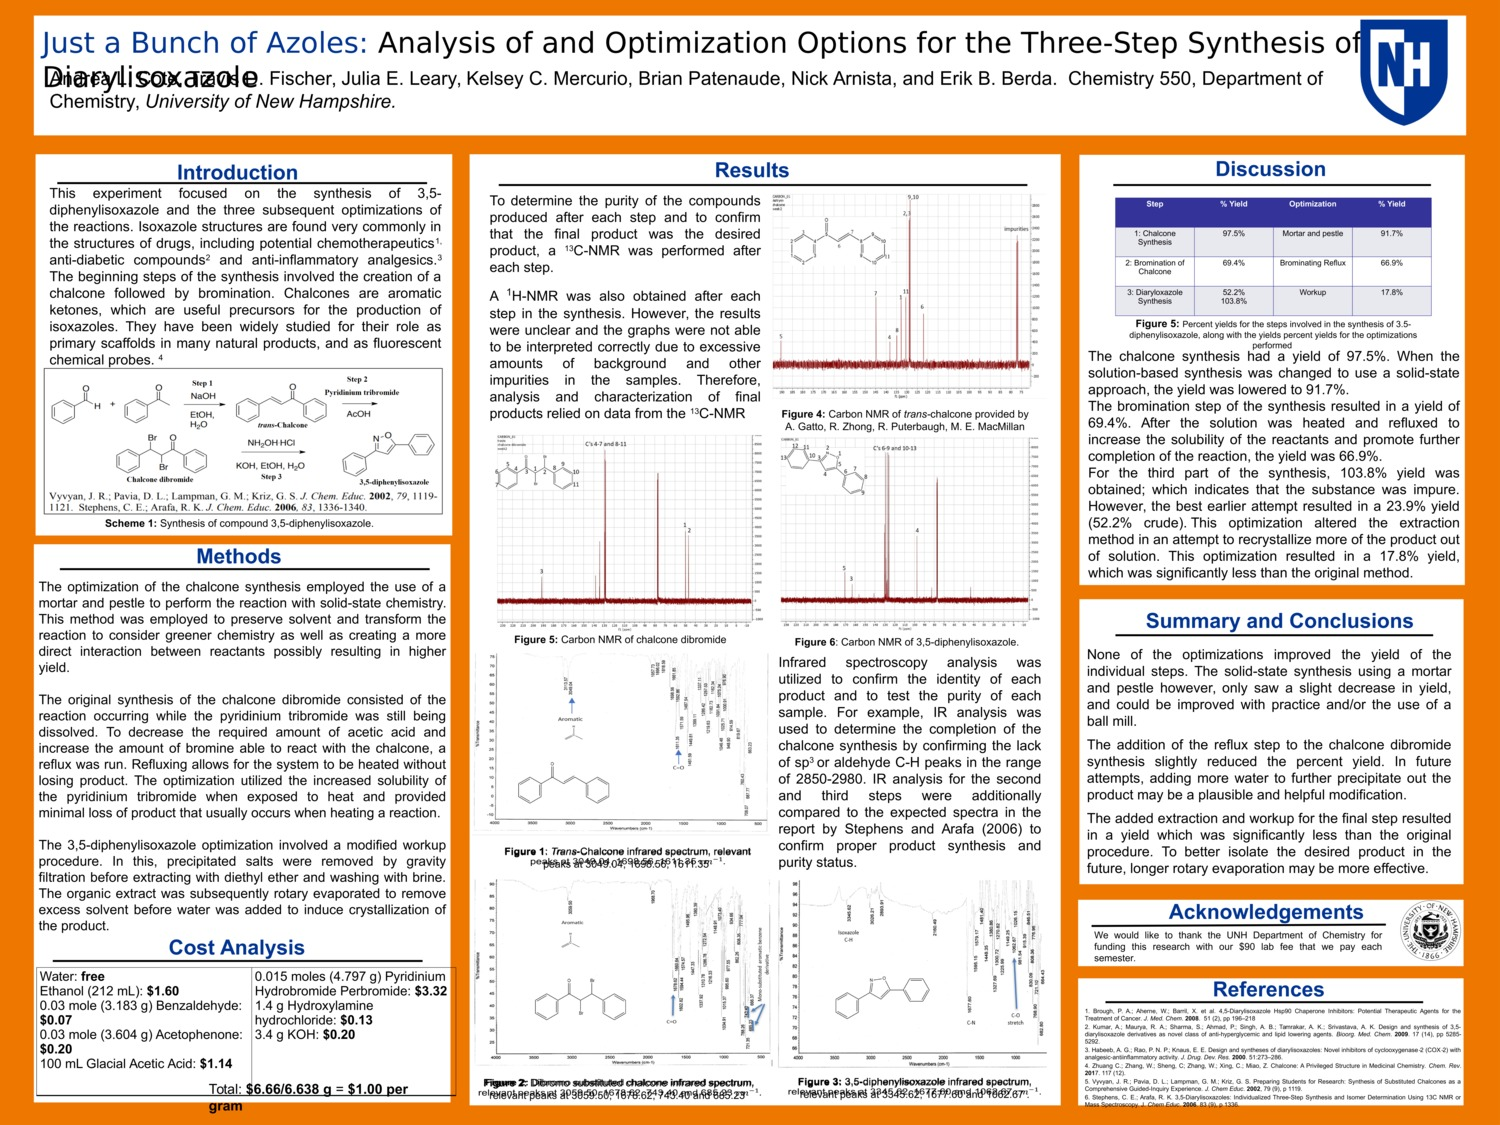 Just A Bunch Of Azoles: Analysis Of And Optimization Options For The Three-Step Synthesis Of 3,5-Diarylisoxazole by alc1055